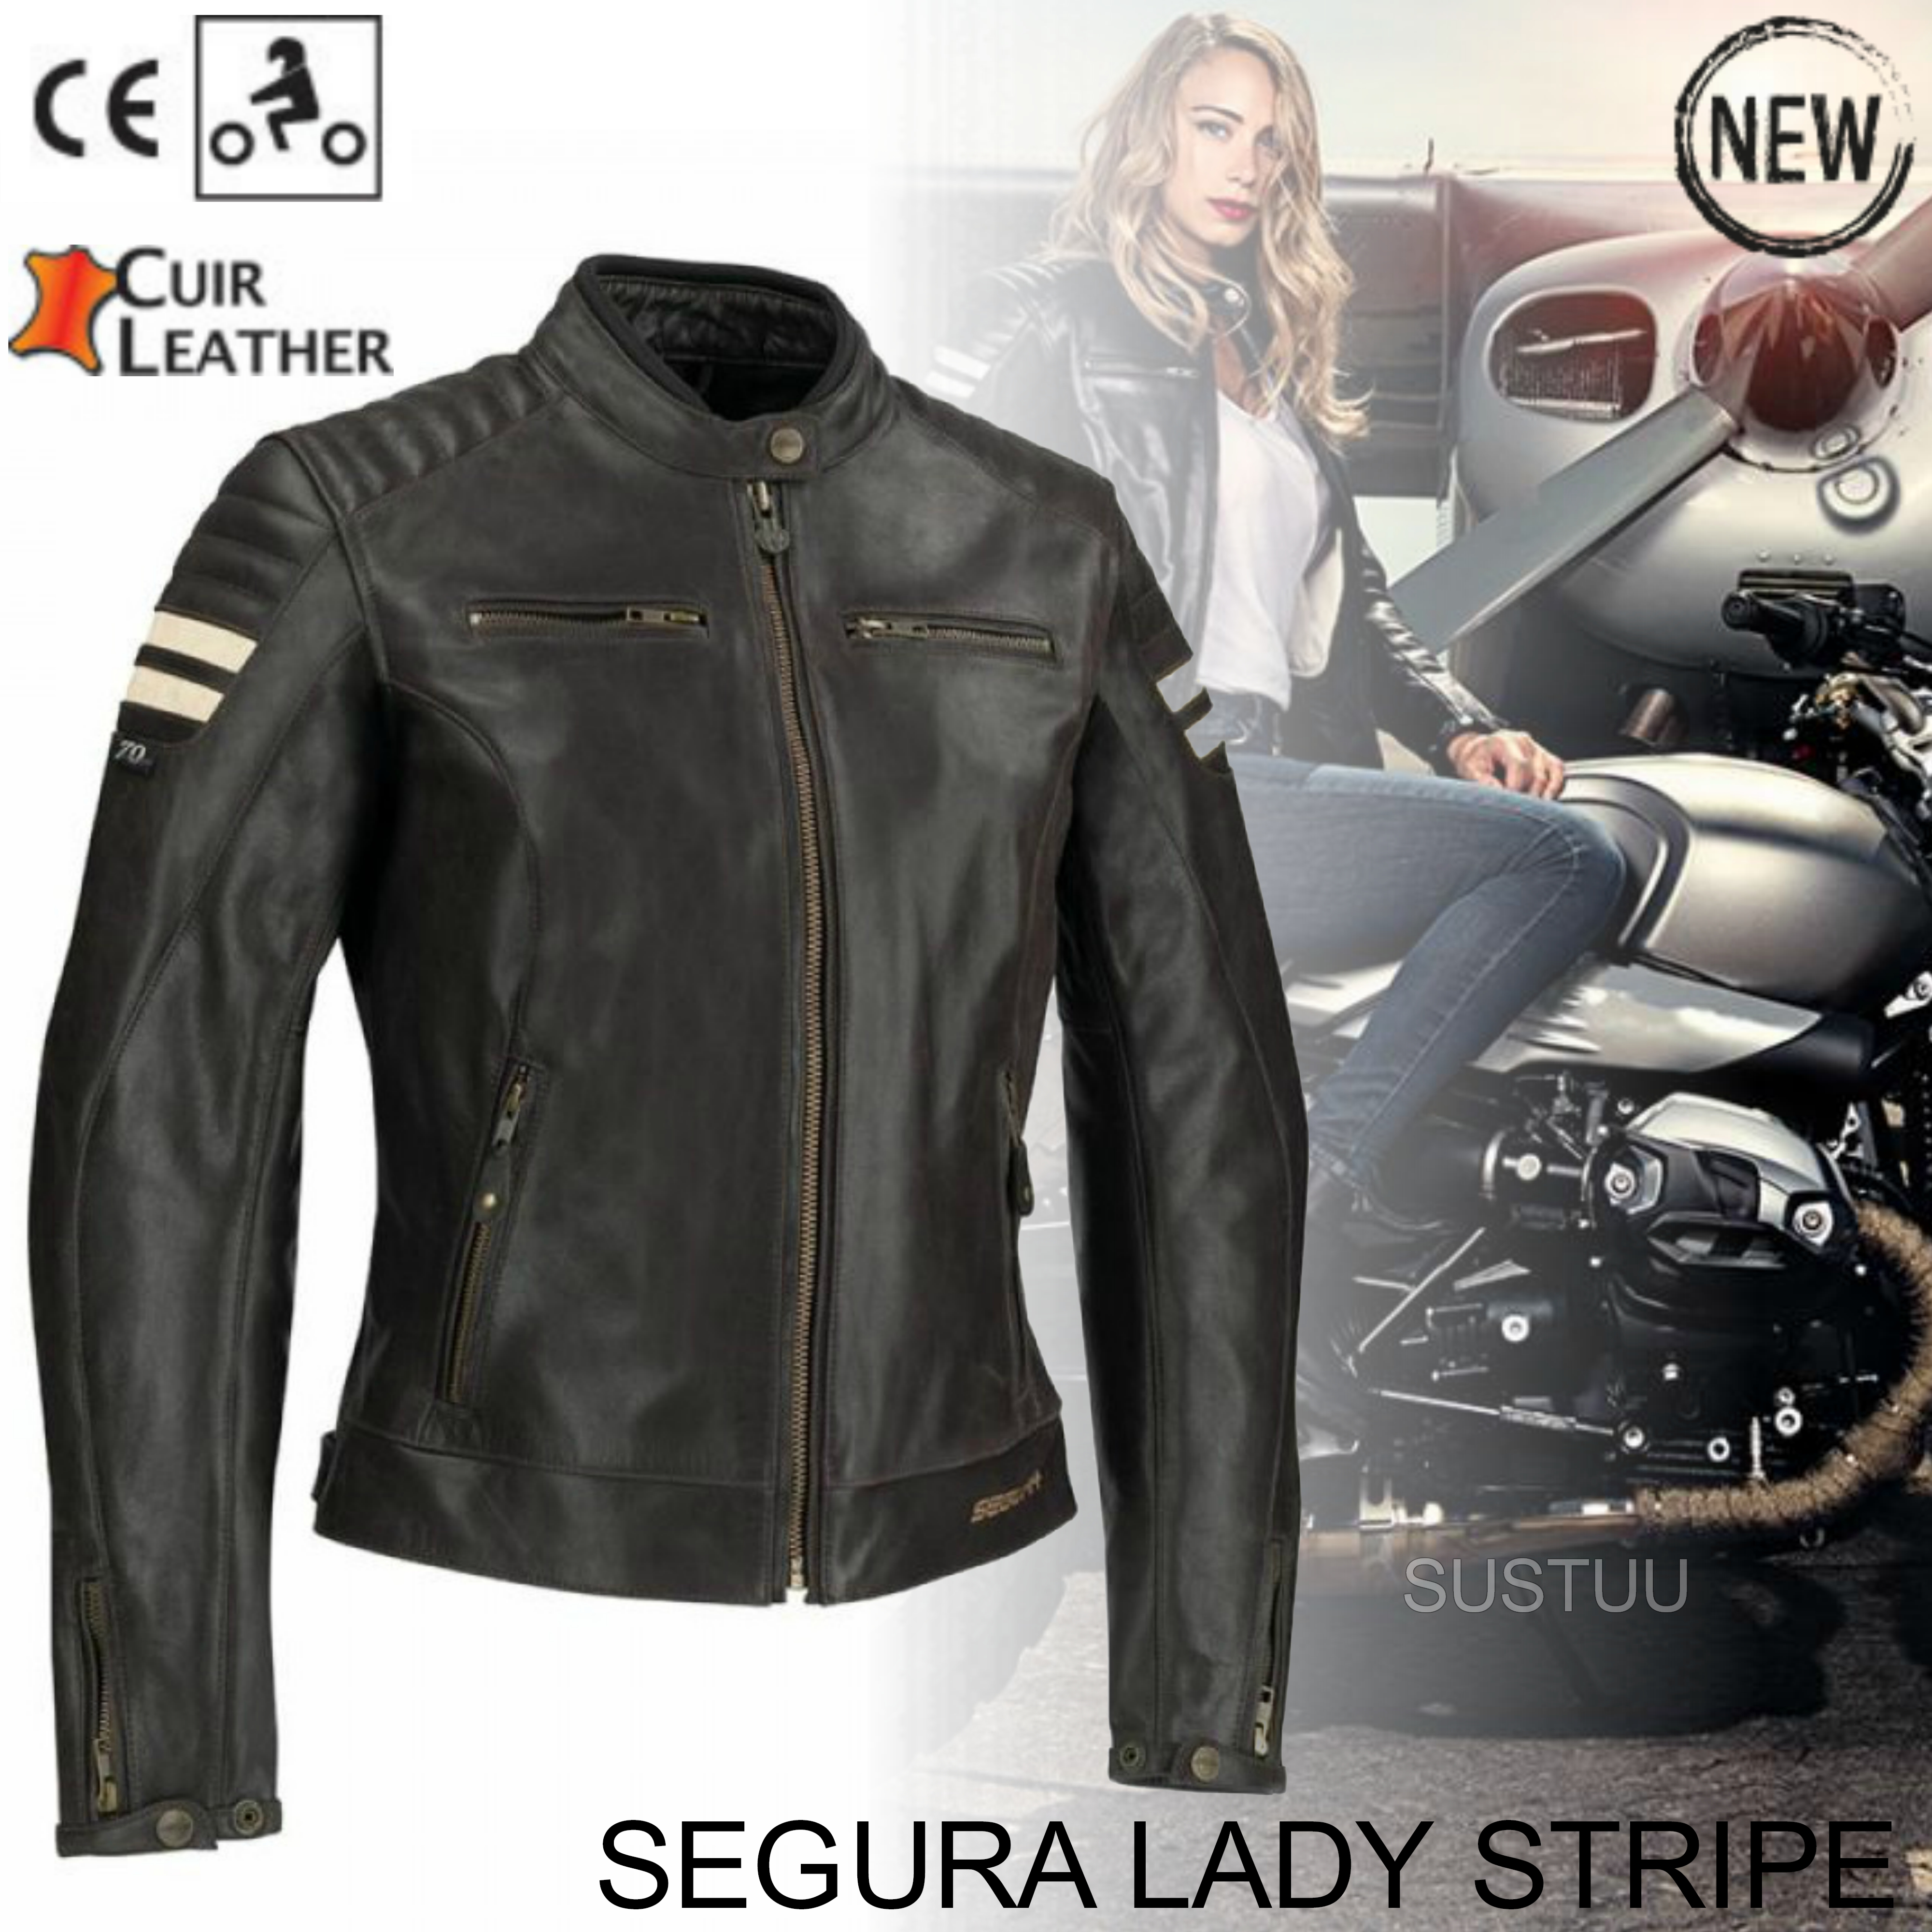 New Segura Lady Stripe Motorcycle/Bike Female Jacket|BuffaloLeather|Body-Fit|CE Protector|Brown